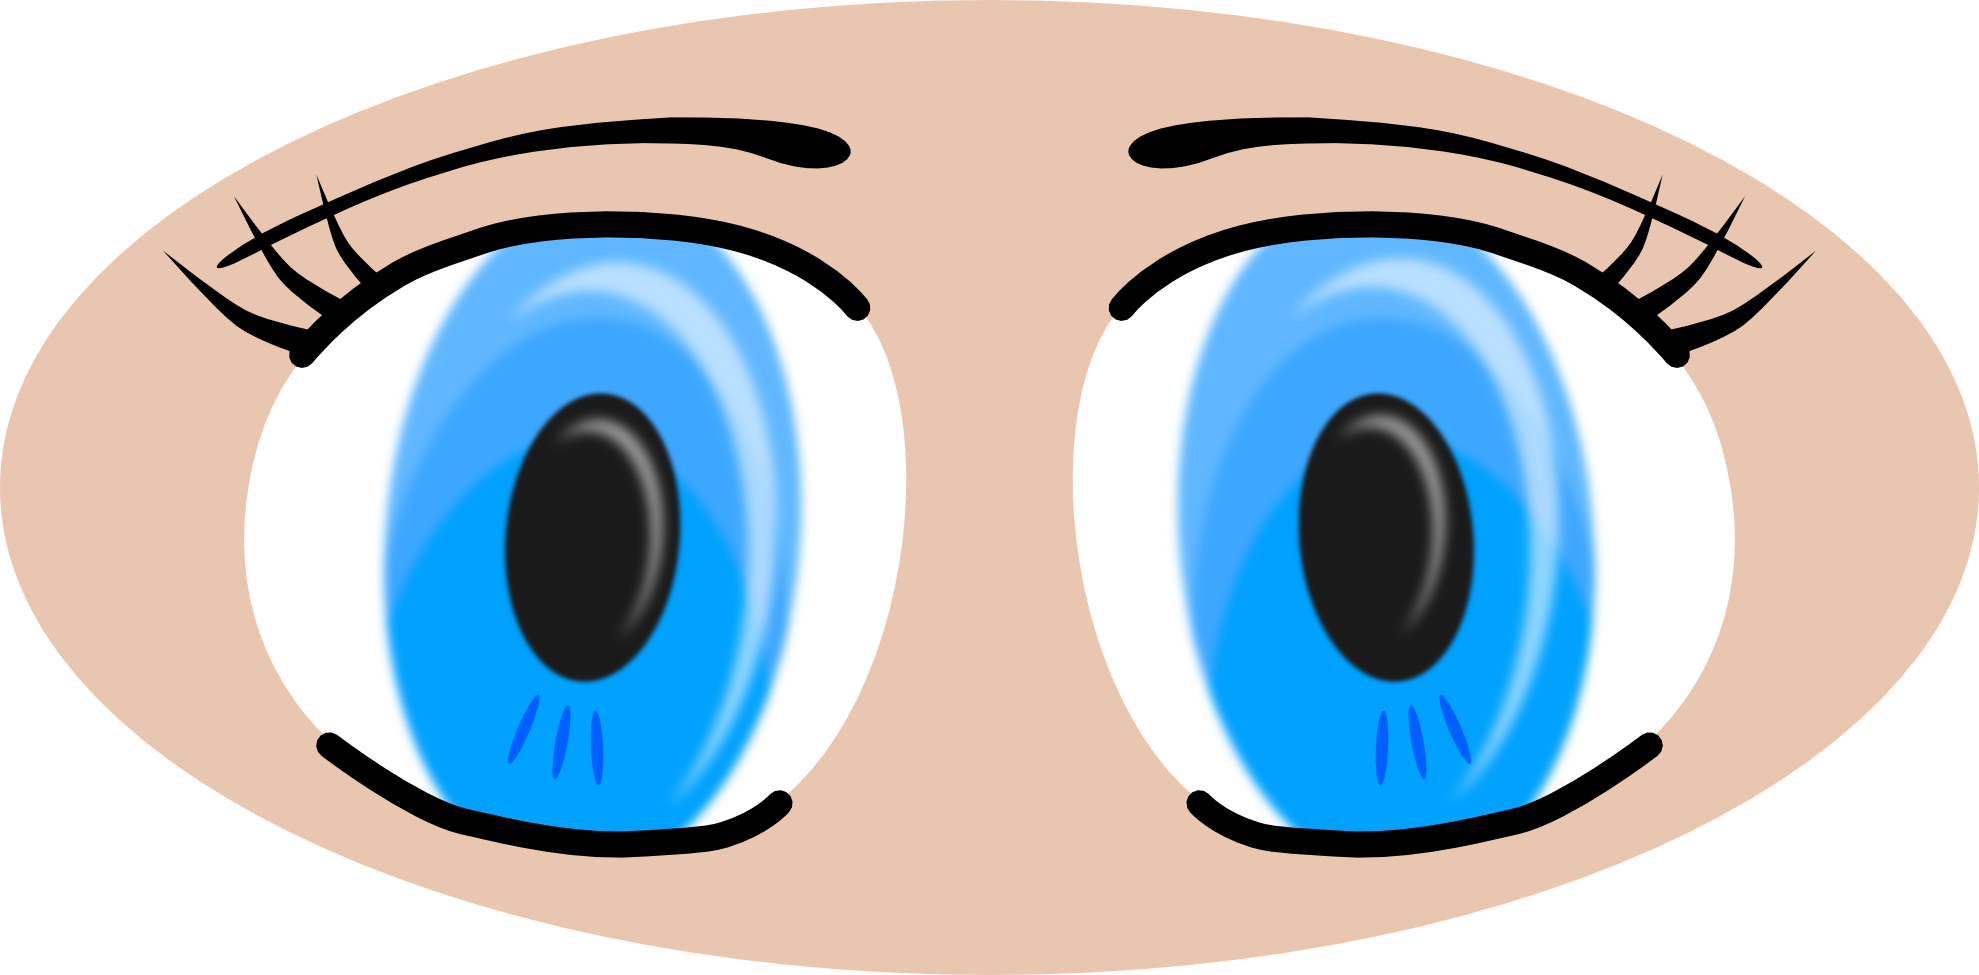 1979x975 Collection Of Eye Clipart High Quality, Free Cliparts